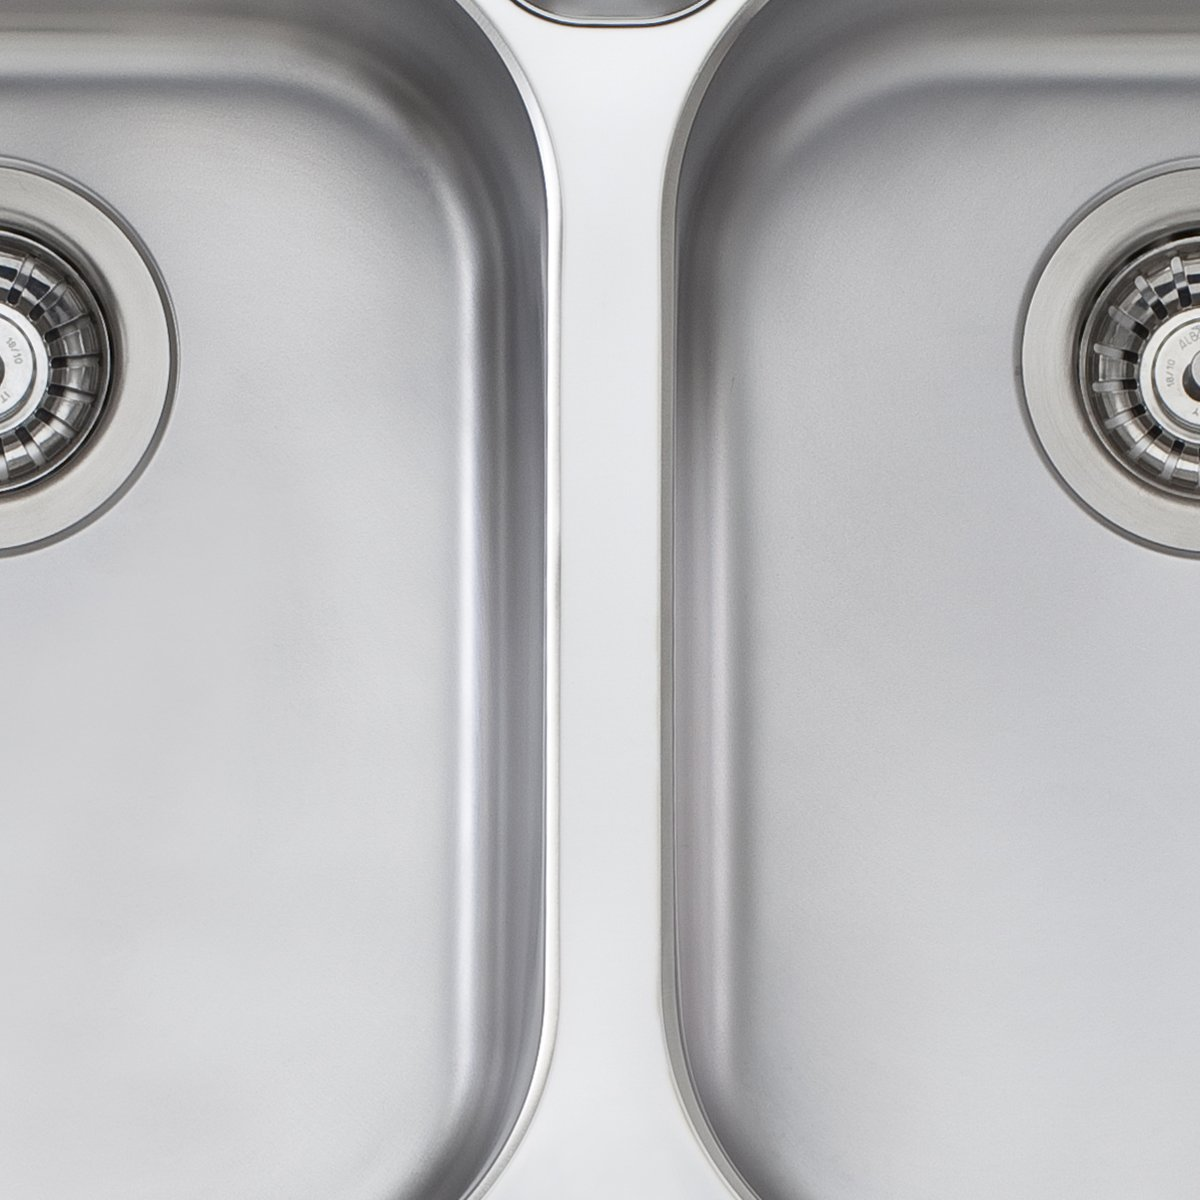 Stainless Steel. Oliveri WA163PACK Diaz Double Bowl Sink Pack